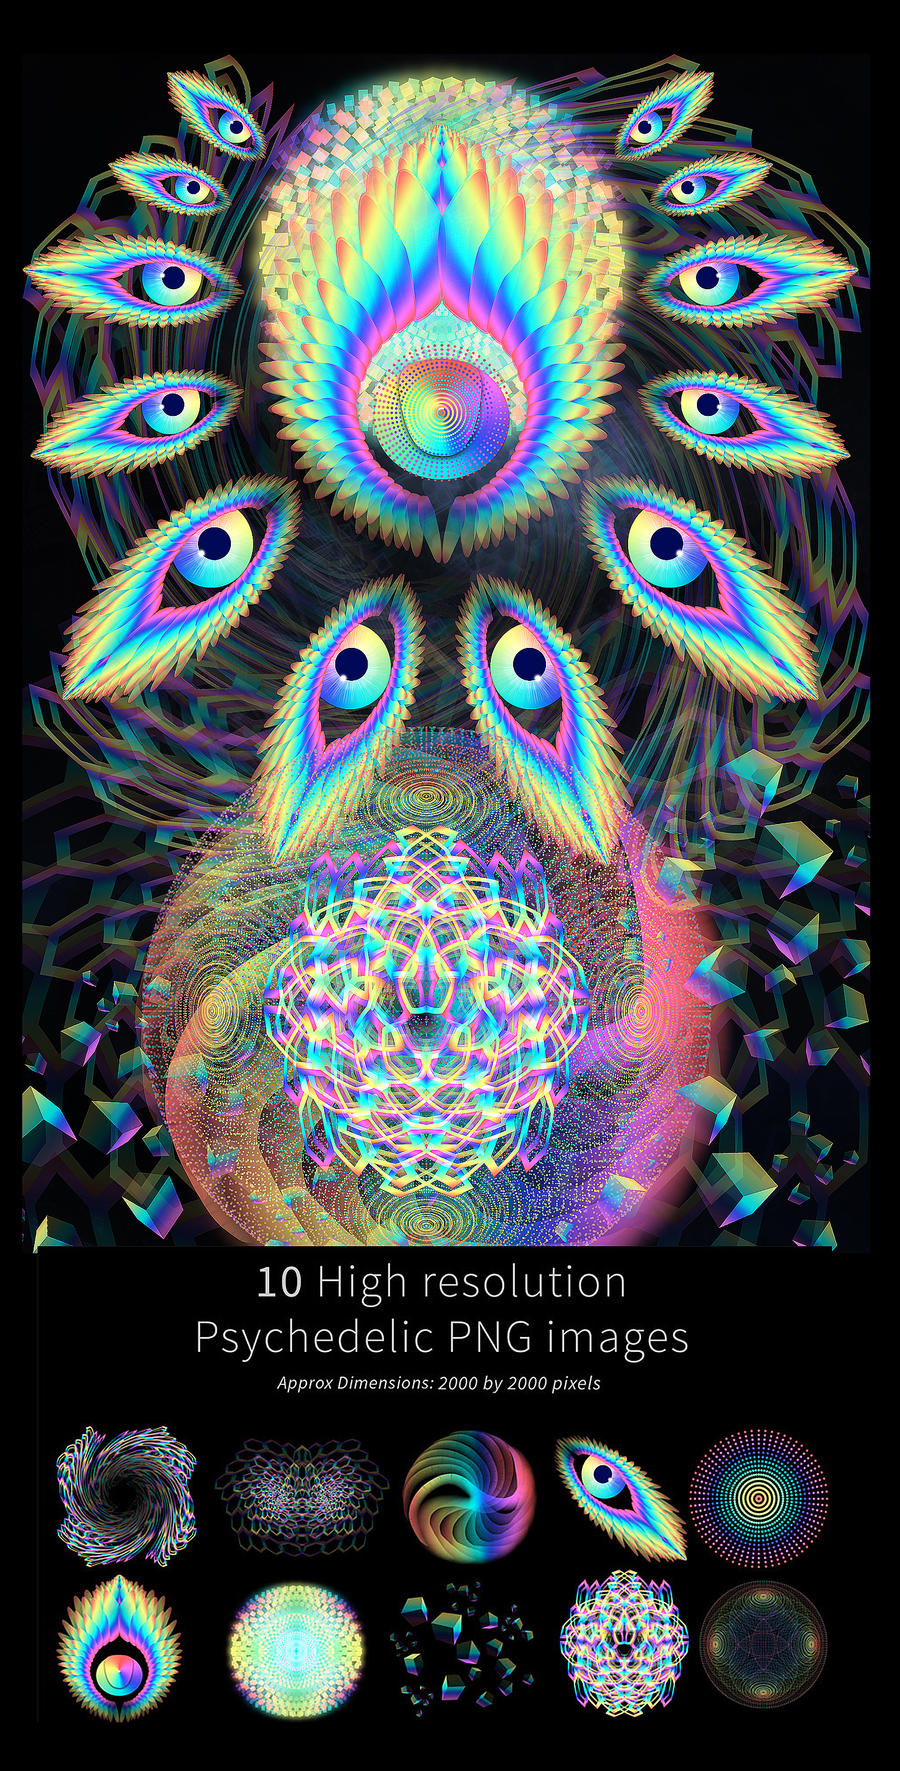 Psychedelic Stock Imagery Pack 4 by LouisDyer on DeviantArt: louisdyer.deviantart.com/art/psychedelic-stock-imagery-pack-4...